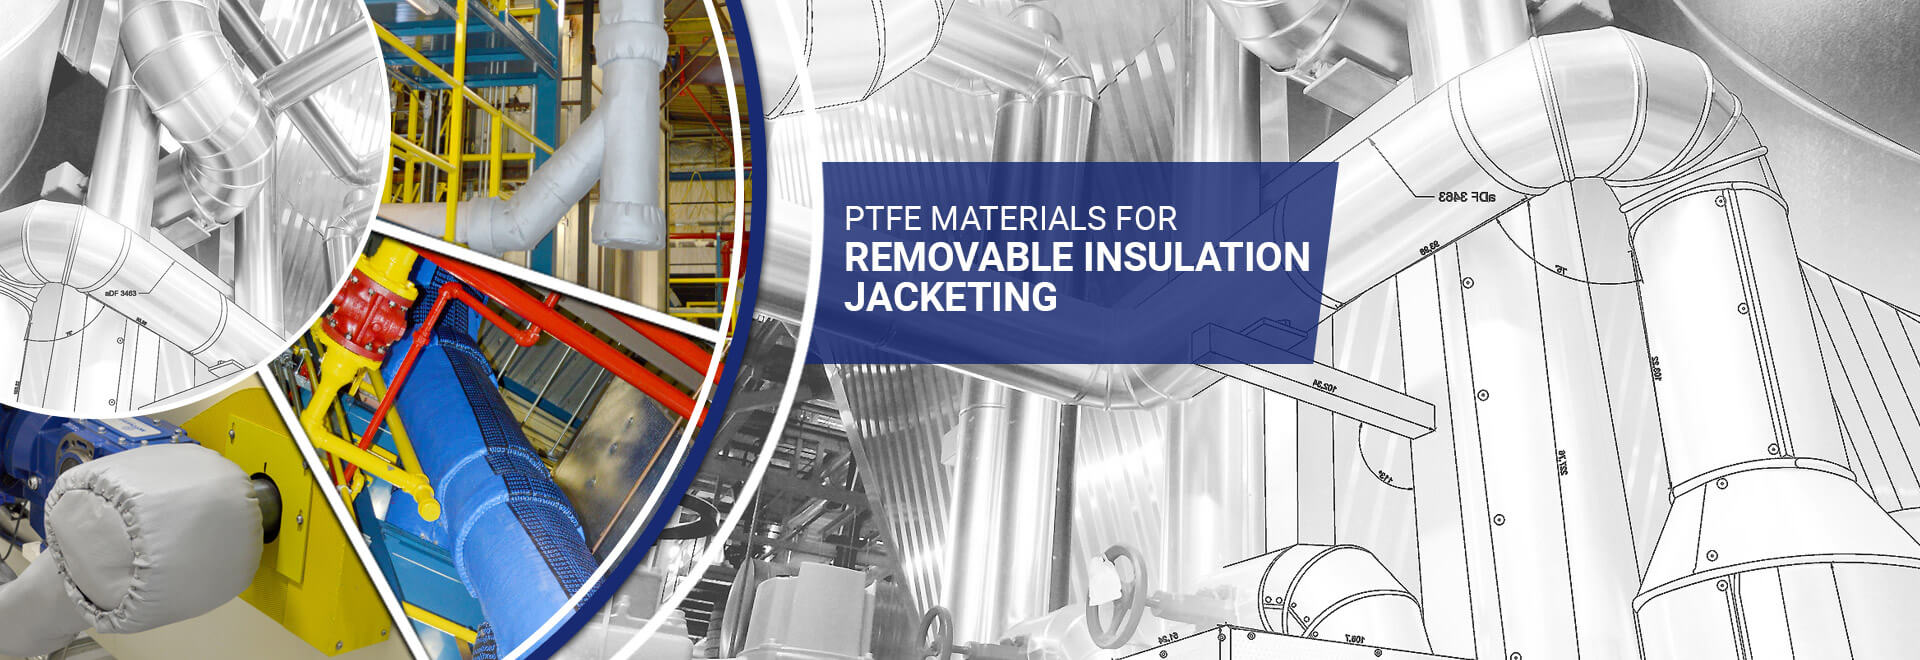 PTFE insulation jacketing materials, removable insulation jacketing materials, teflon insulation jacketing, removeable insulation cover, insulation industrial, removeable insulation pad material